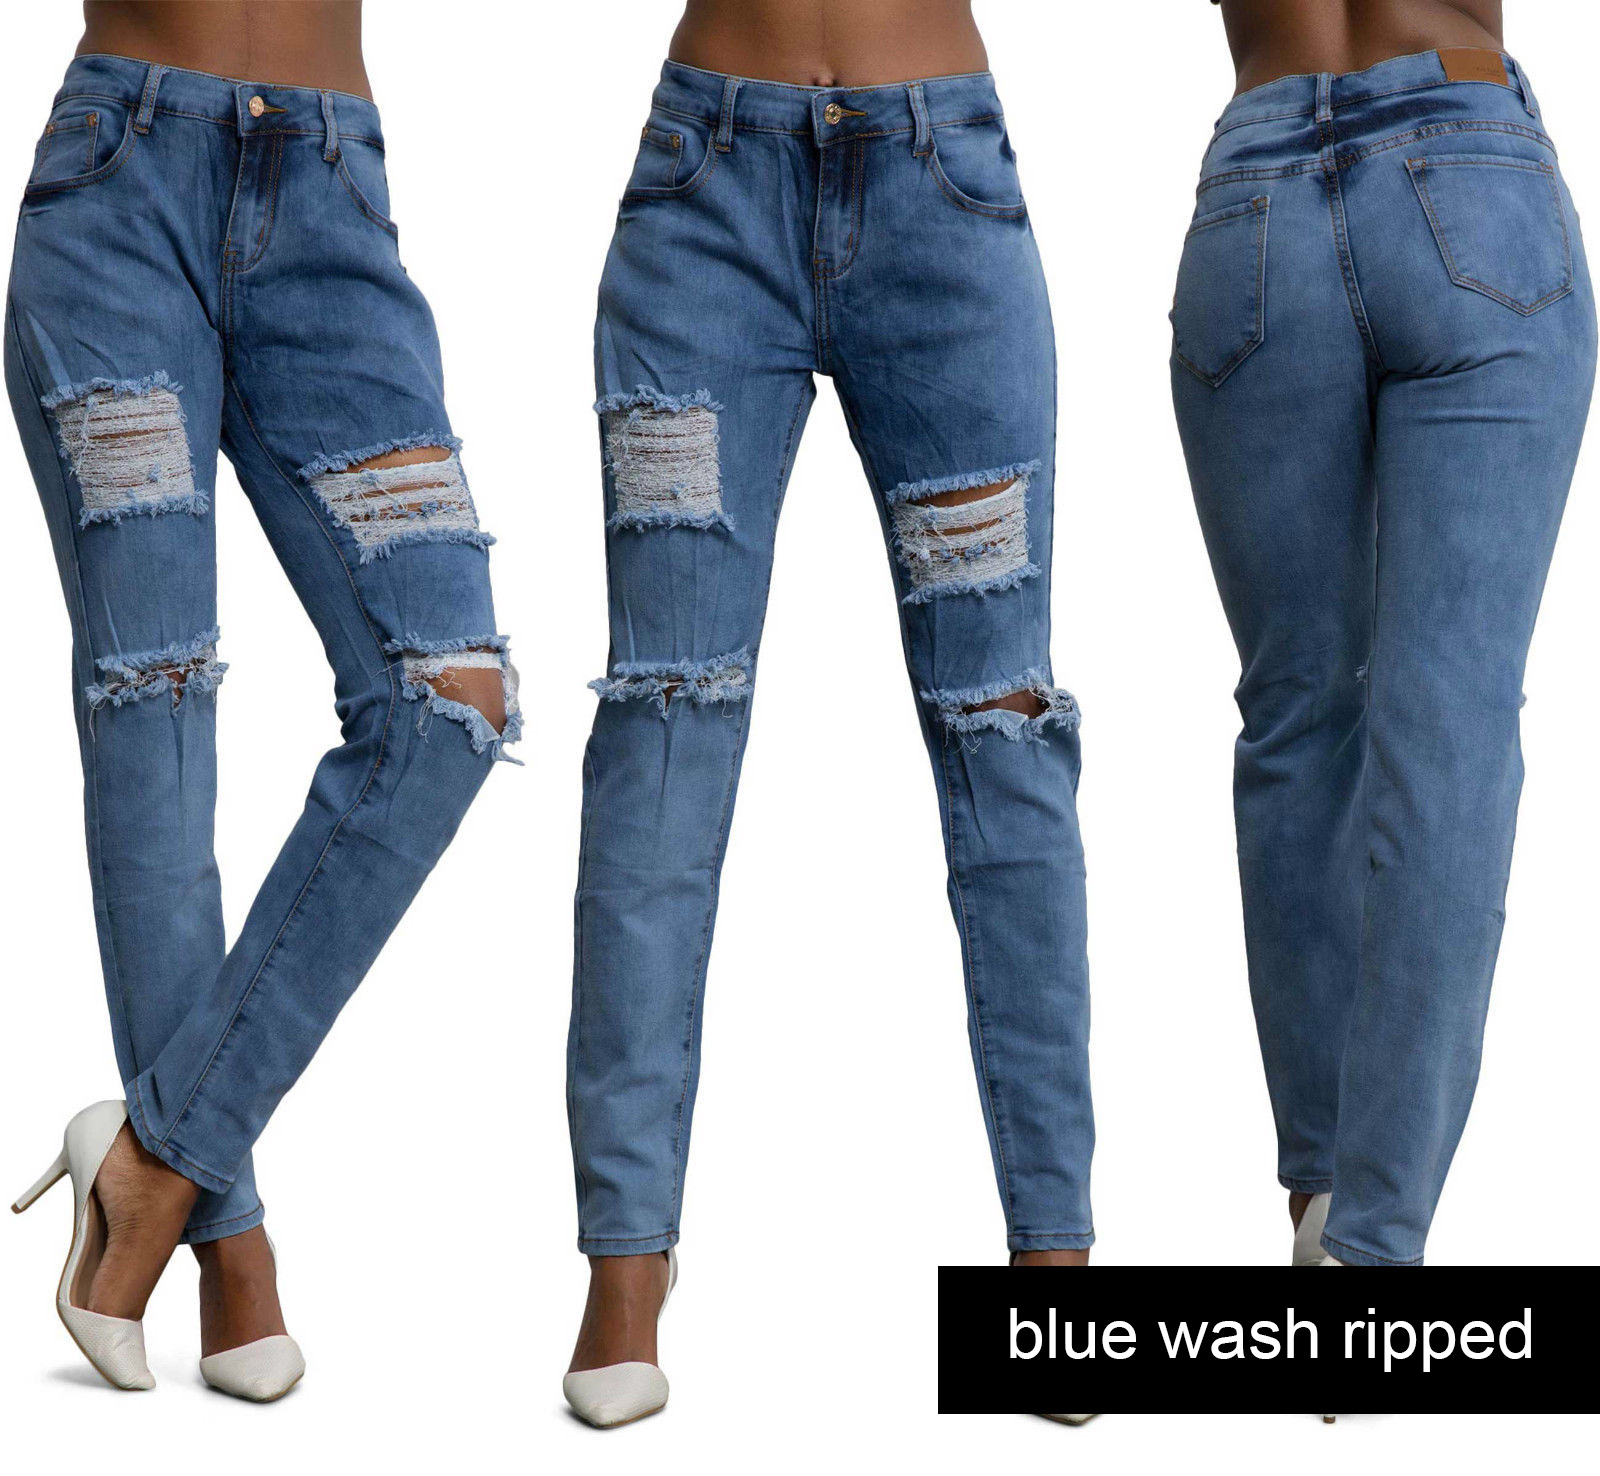 Free shipping BOTH ways on liz claiborne jackie bootcut stretch denim 5 pocket jean medium wash, from our vast selection of styles. Fast delivery, and 24/7/ real-person service with a .